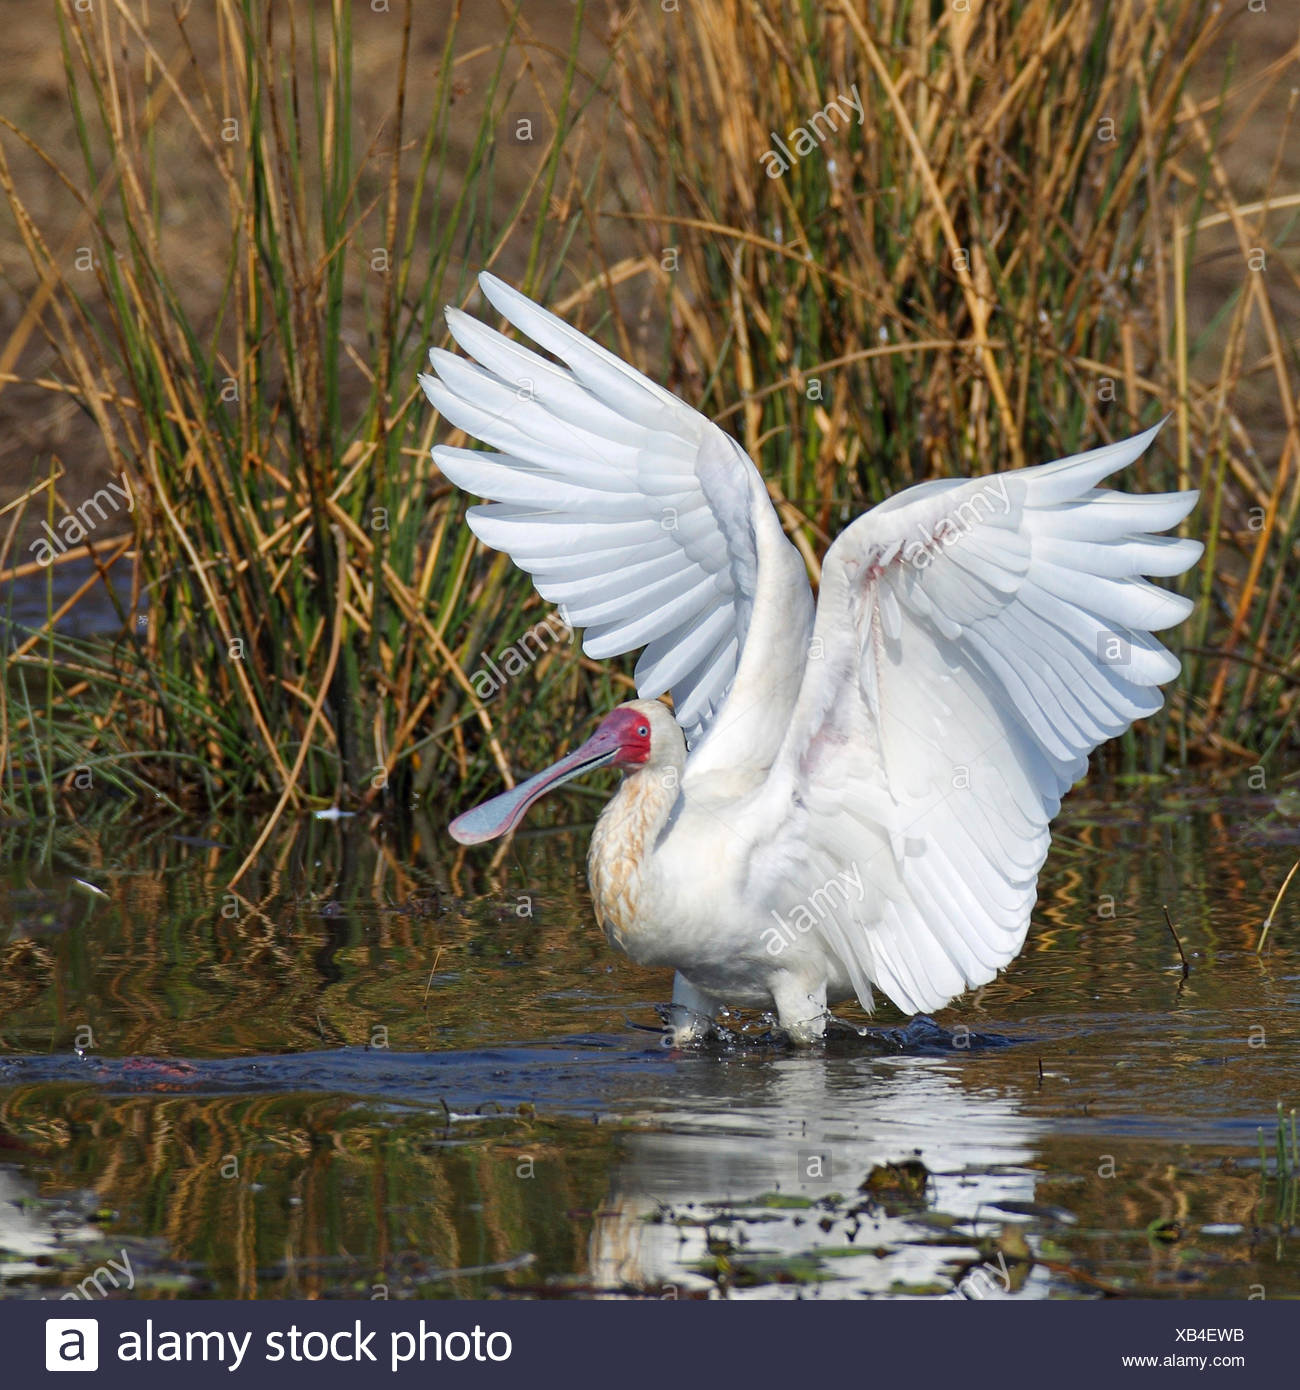 African spoonbill (Platalea alba), looking for food in shallow water, South Africa, Pilanesberg National Park - Stock Image